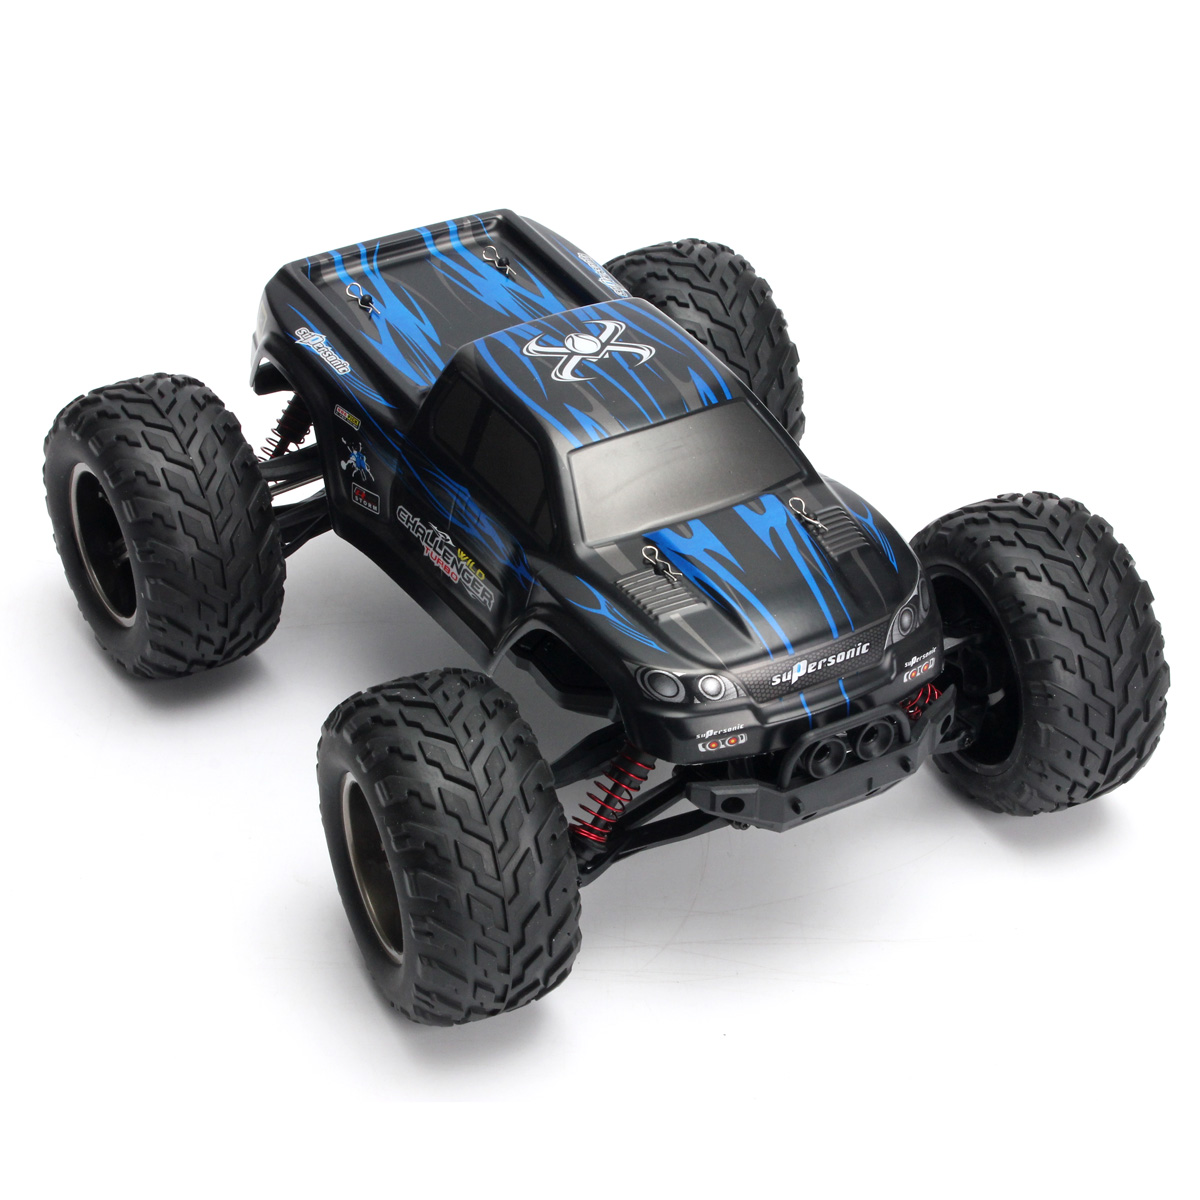 1:12 2.4G Radio Remote Control Car RC Off Road Buggy Mons...